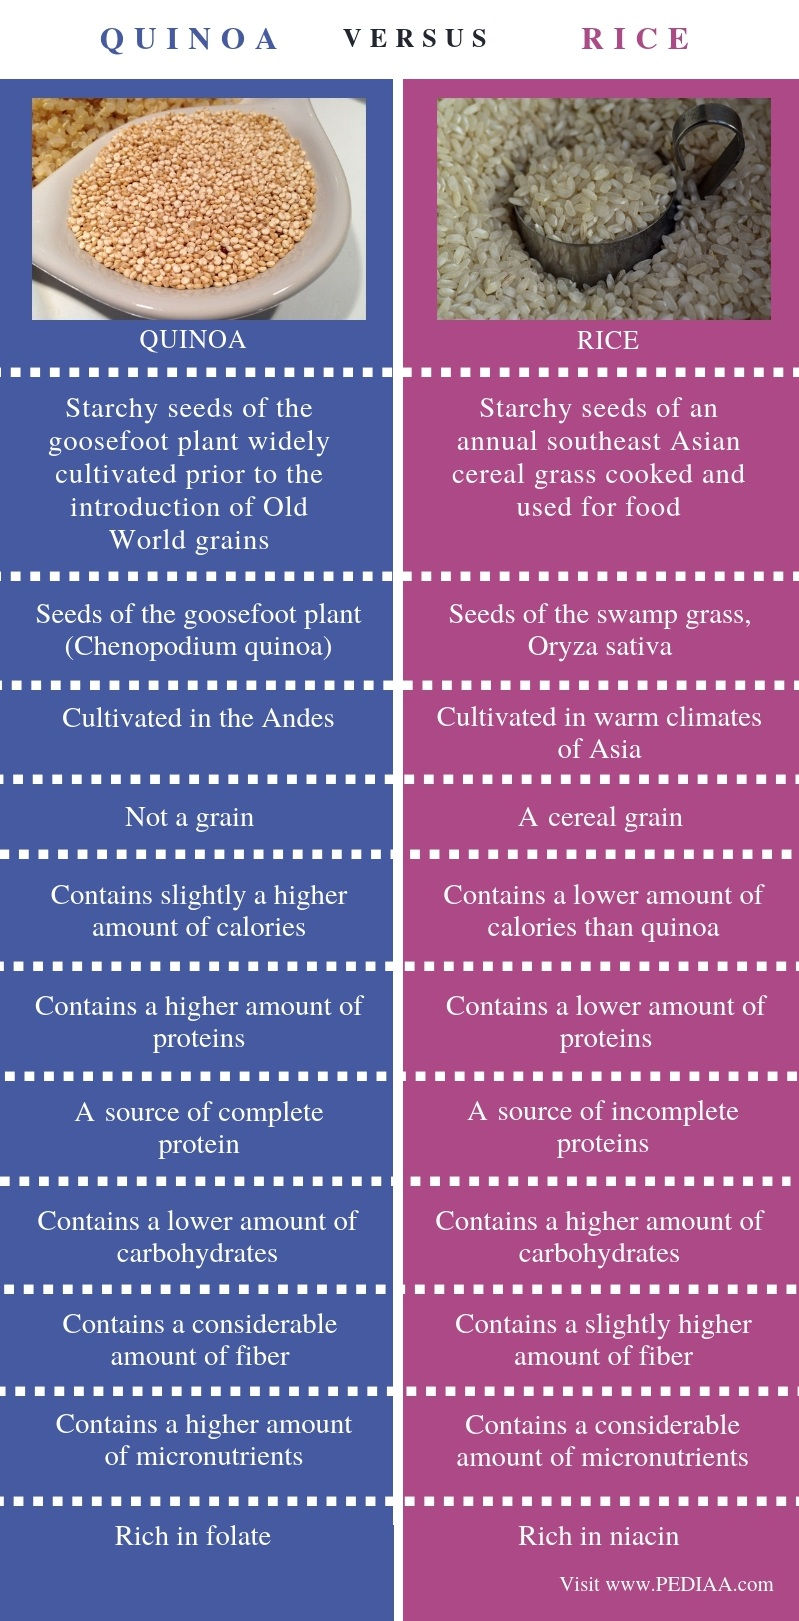 Difference Between Quinoa and Rice - Comparison Summary